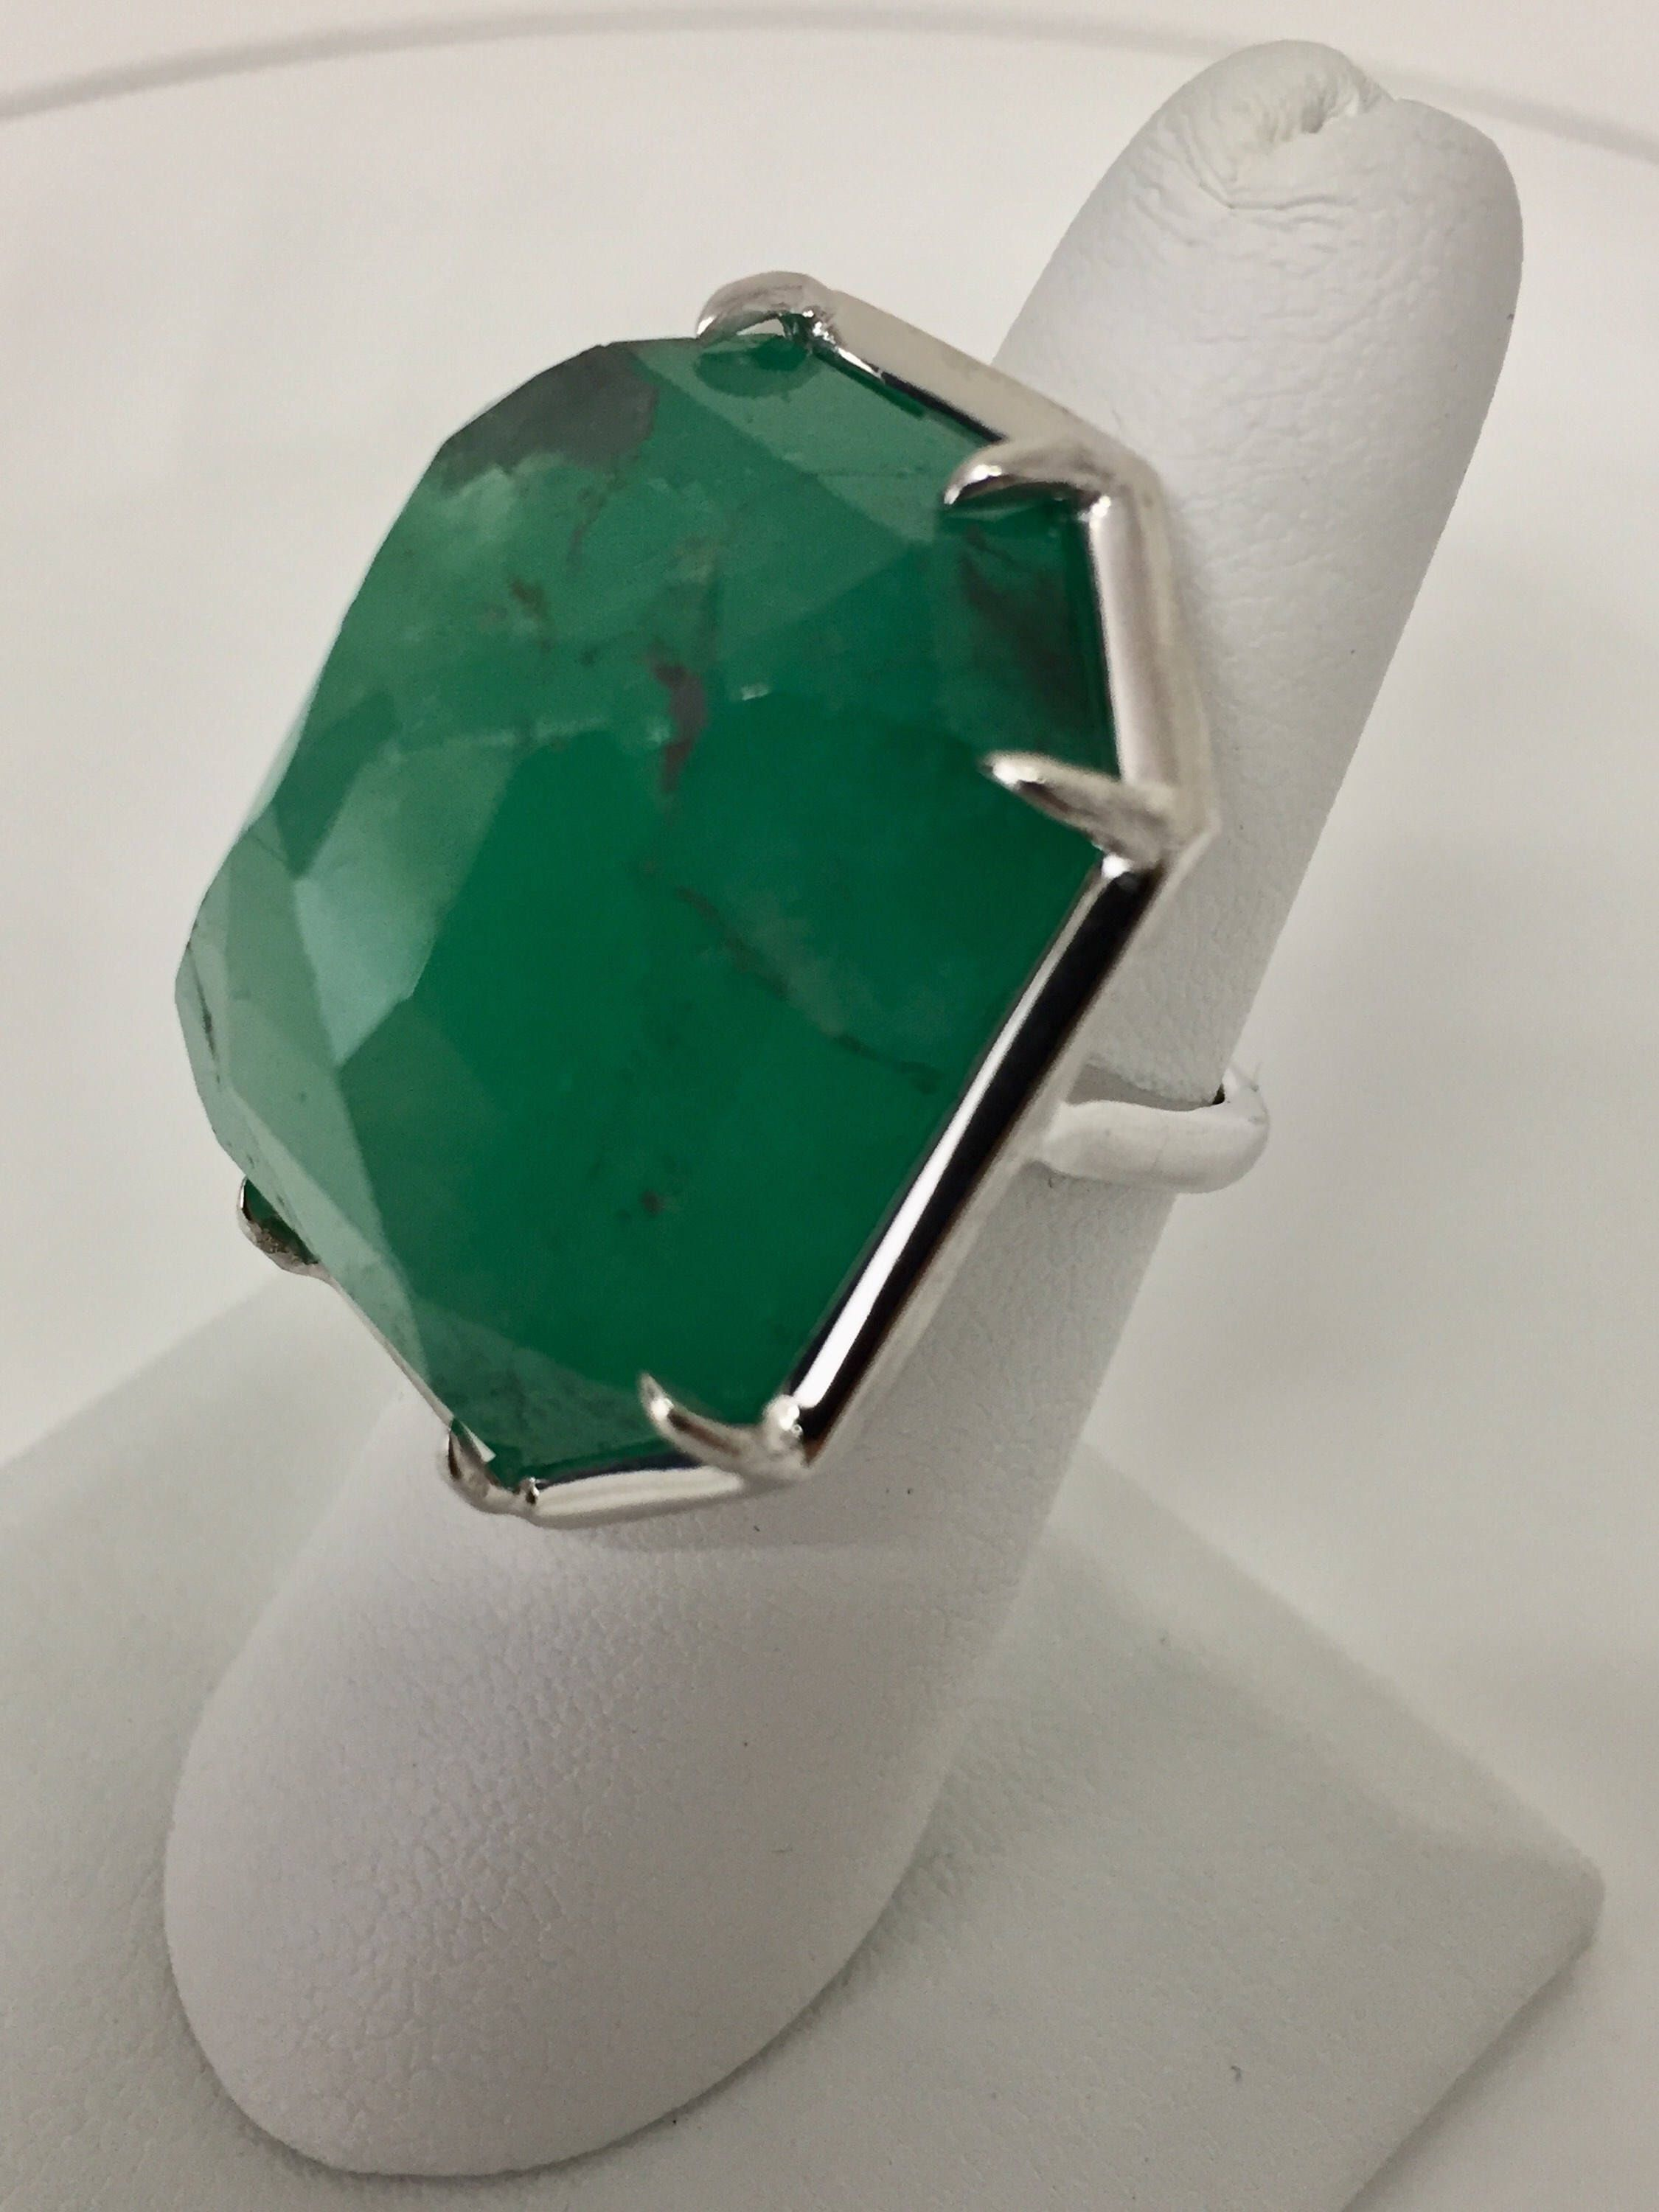 b5fdd06aa79b4a Excited to share this item from my #etsy shop: 64.87 ct vintage emerald ring,  Gigantic Columbian emerald, large green emerald ring, huge emerald ring, ...